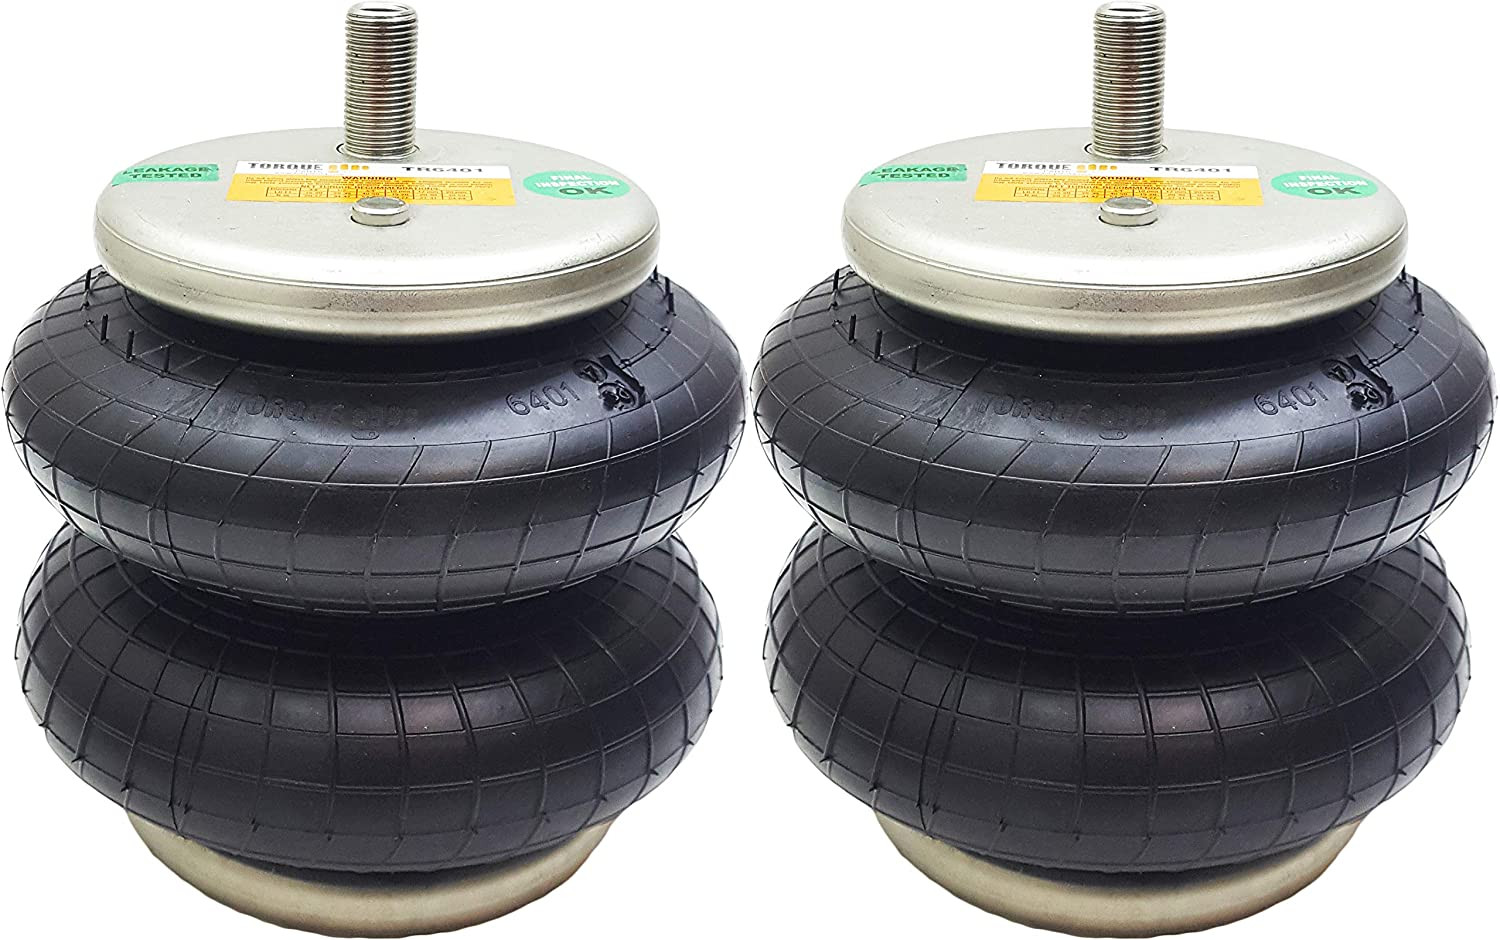 Pair of Torque TR6401 Air Spring Suspension Replacement bag for Ride Rite 6401 kits 1//4 NPT